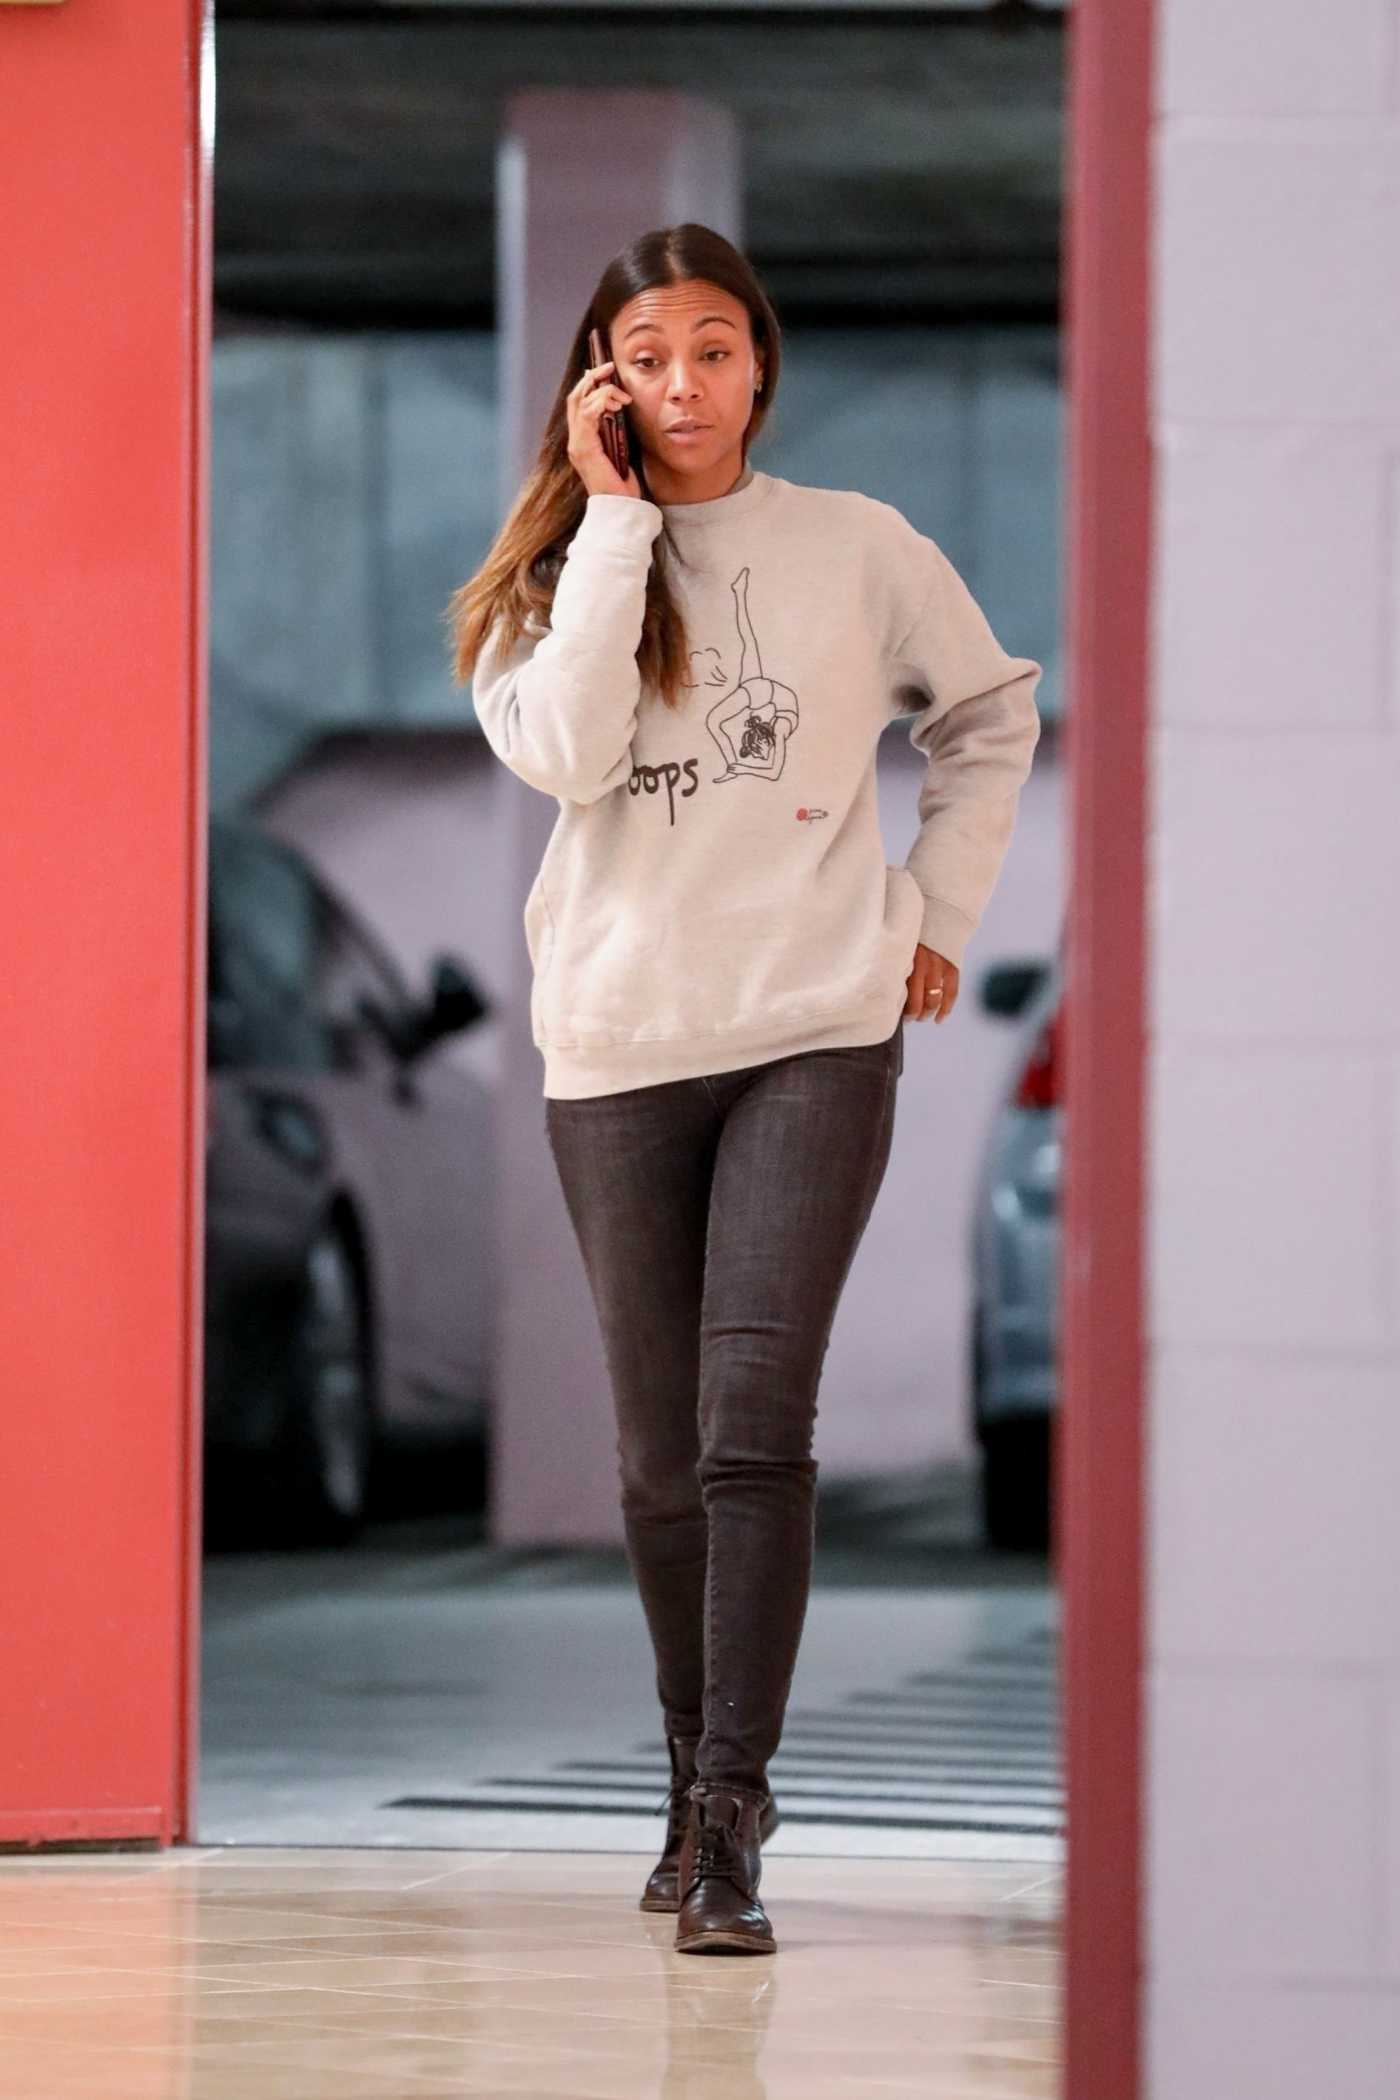 Zoe Saldana in a Gray Sweatshirt Arrives at a Medical Building in Beverly Hills 12/18/2019